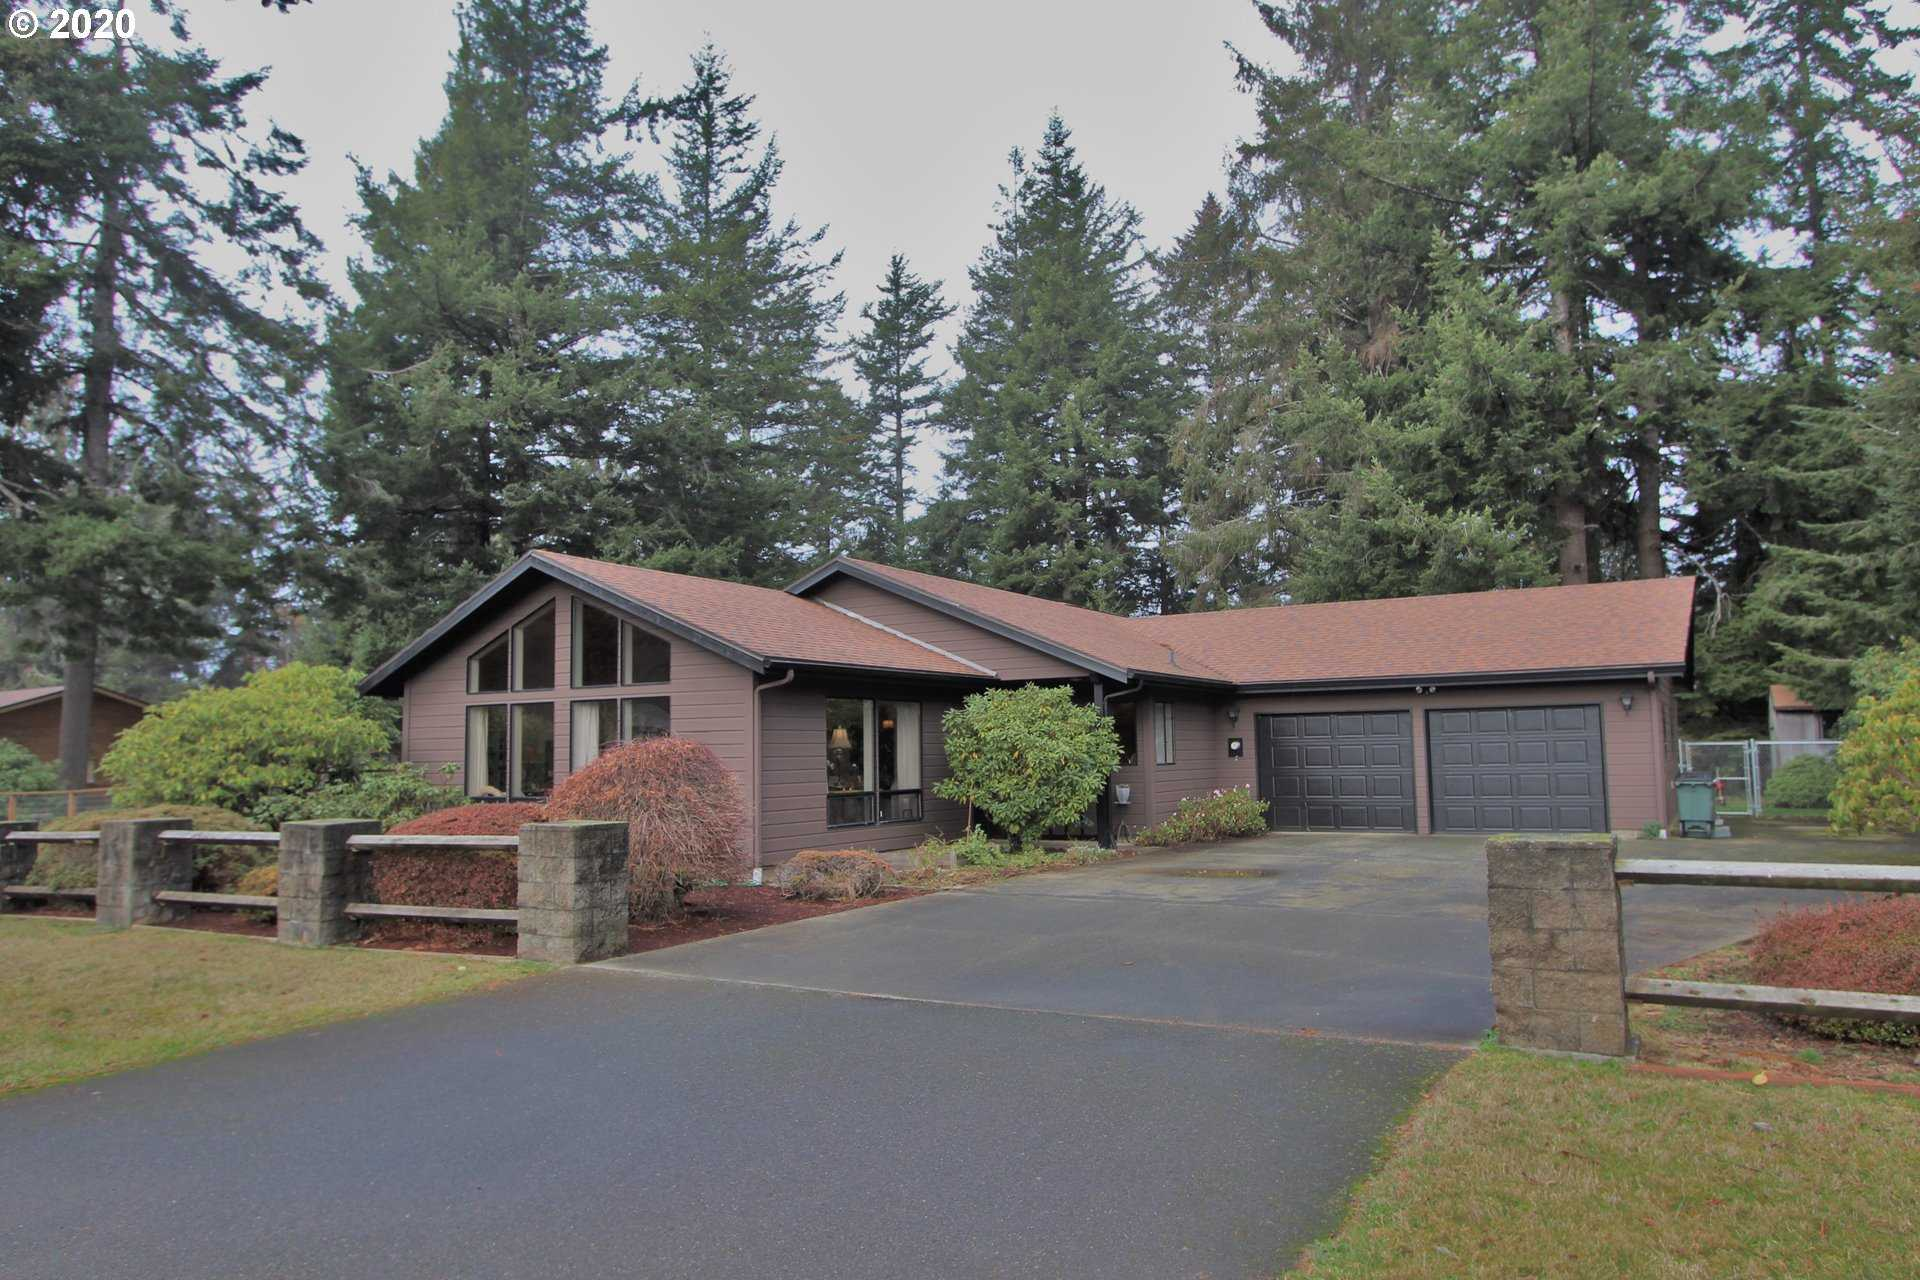 $447,000 - 3Br/2Ba -  for Sale in Bandon